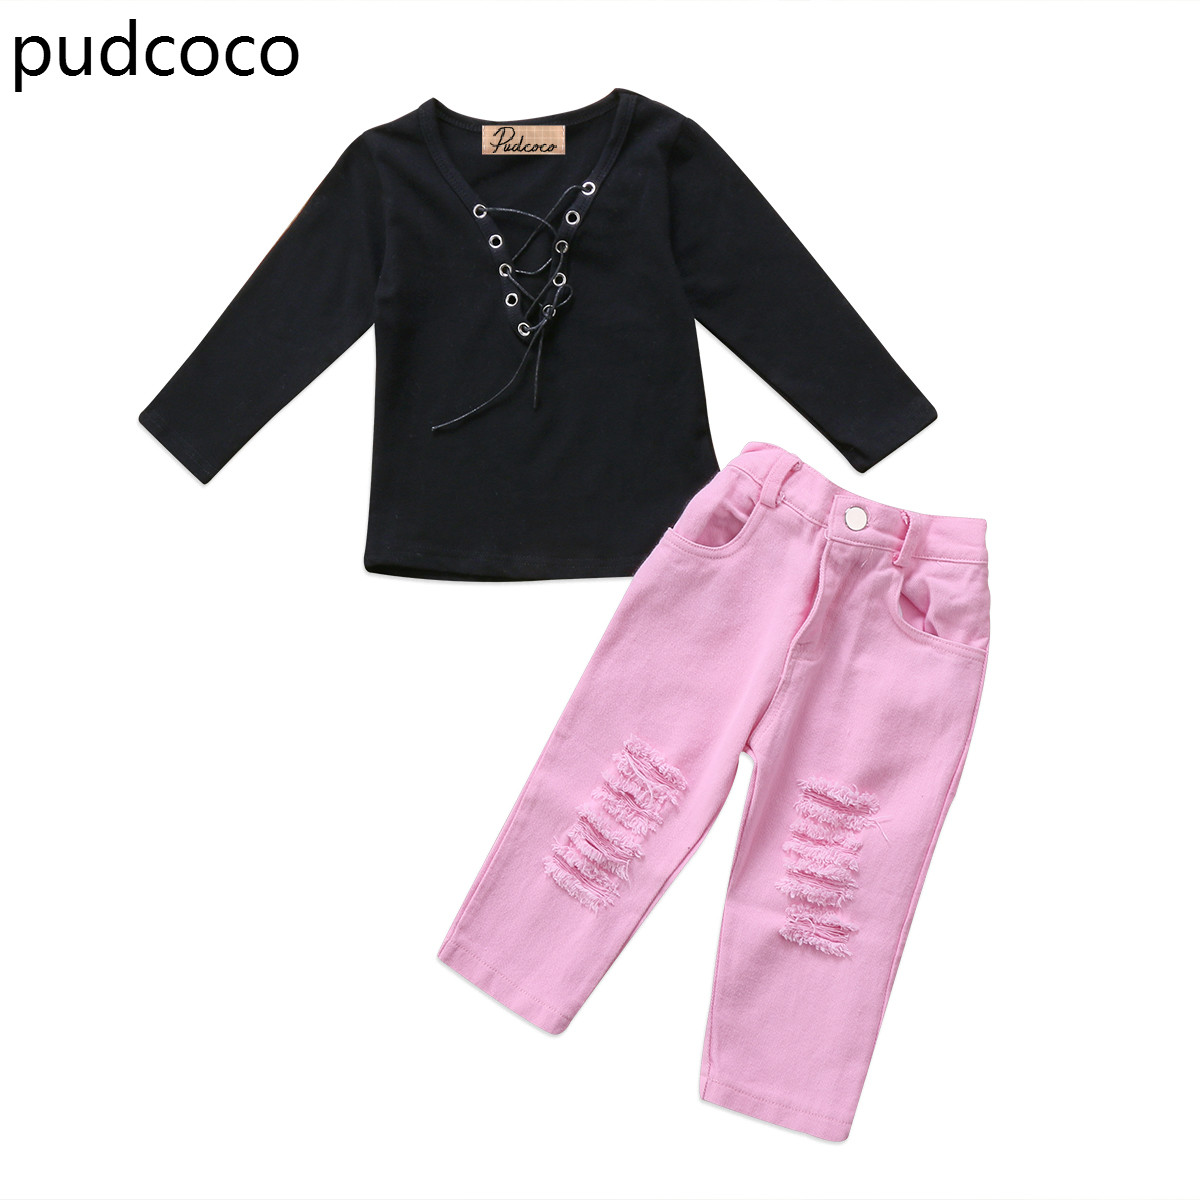 Fashion Kids Girls Black Bandage Tops Ripped Long Jeans Pants Clothes Outfit 2pcs Autumn Baby Clothing Set 0-5Y 2017 new fashion children girl clothes off shoulder long sleeve t shirt tops hole denim pant jeans 2pcs outfit kids clothing set